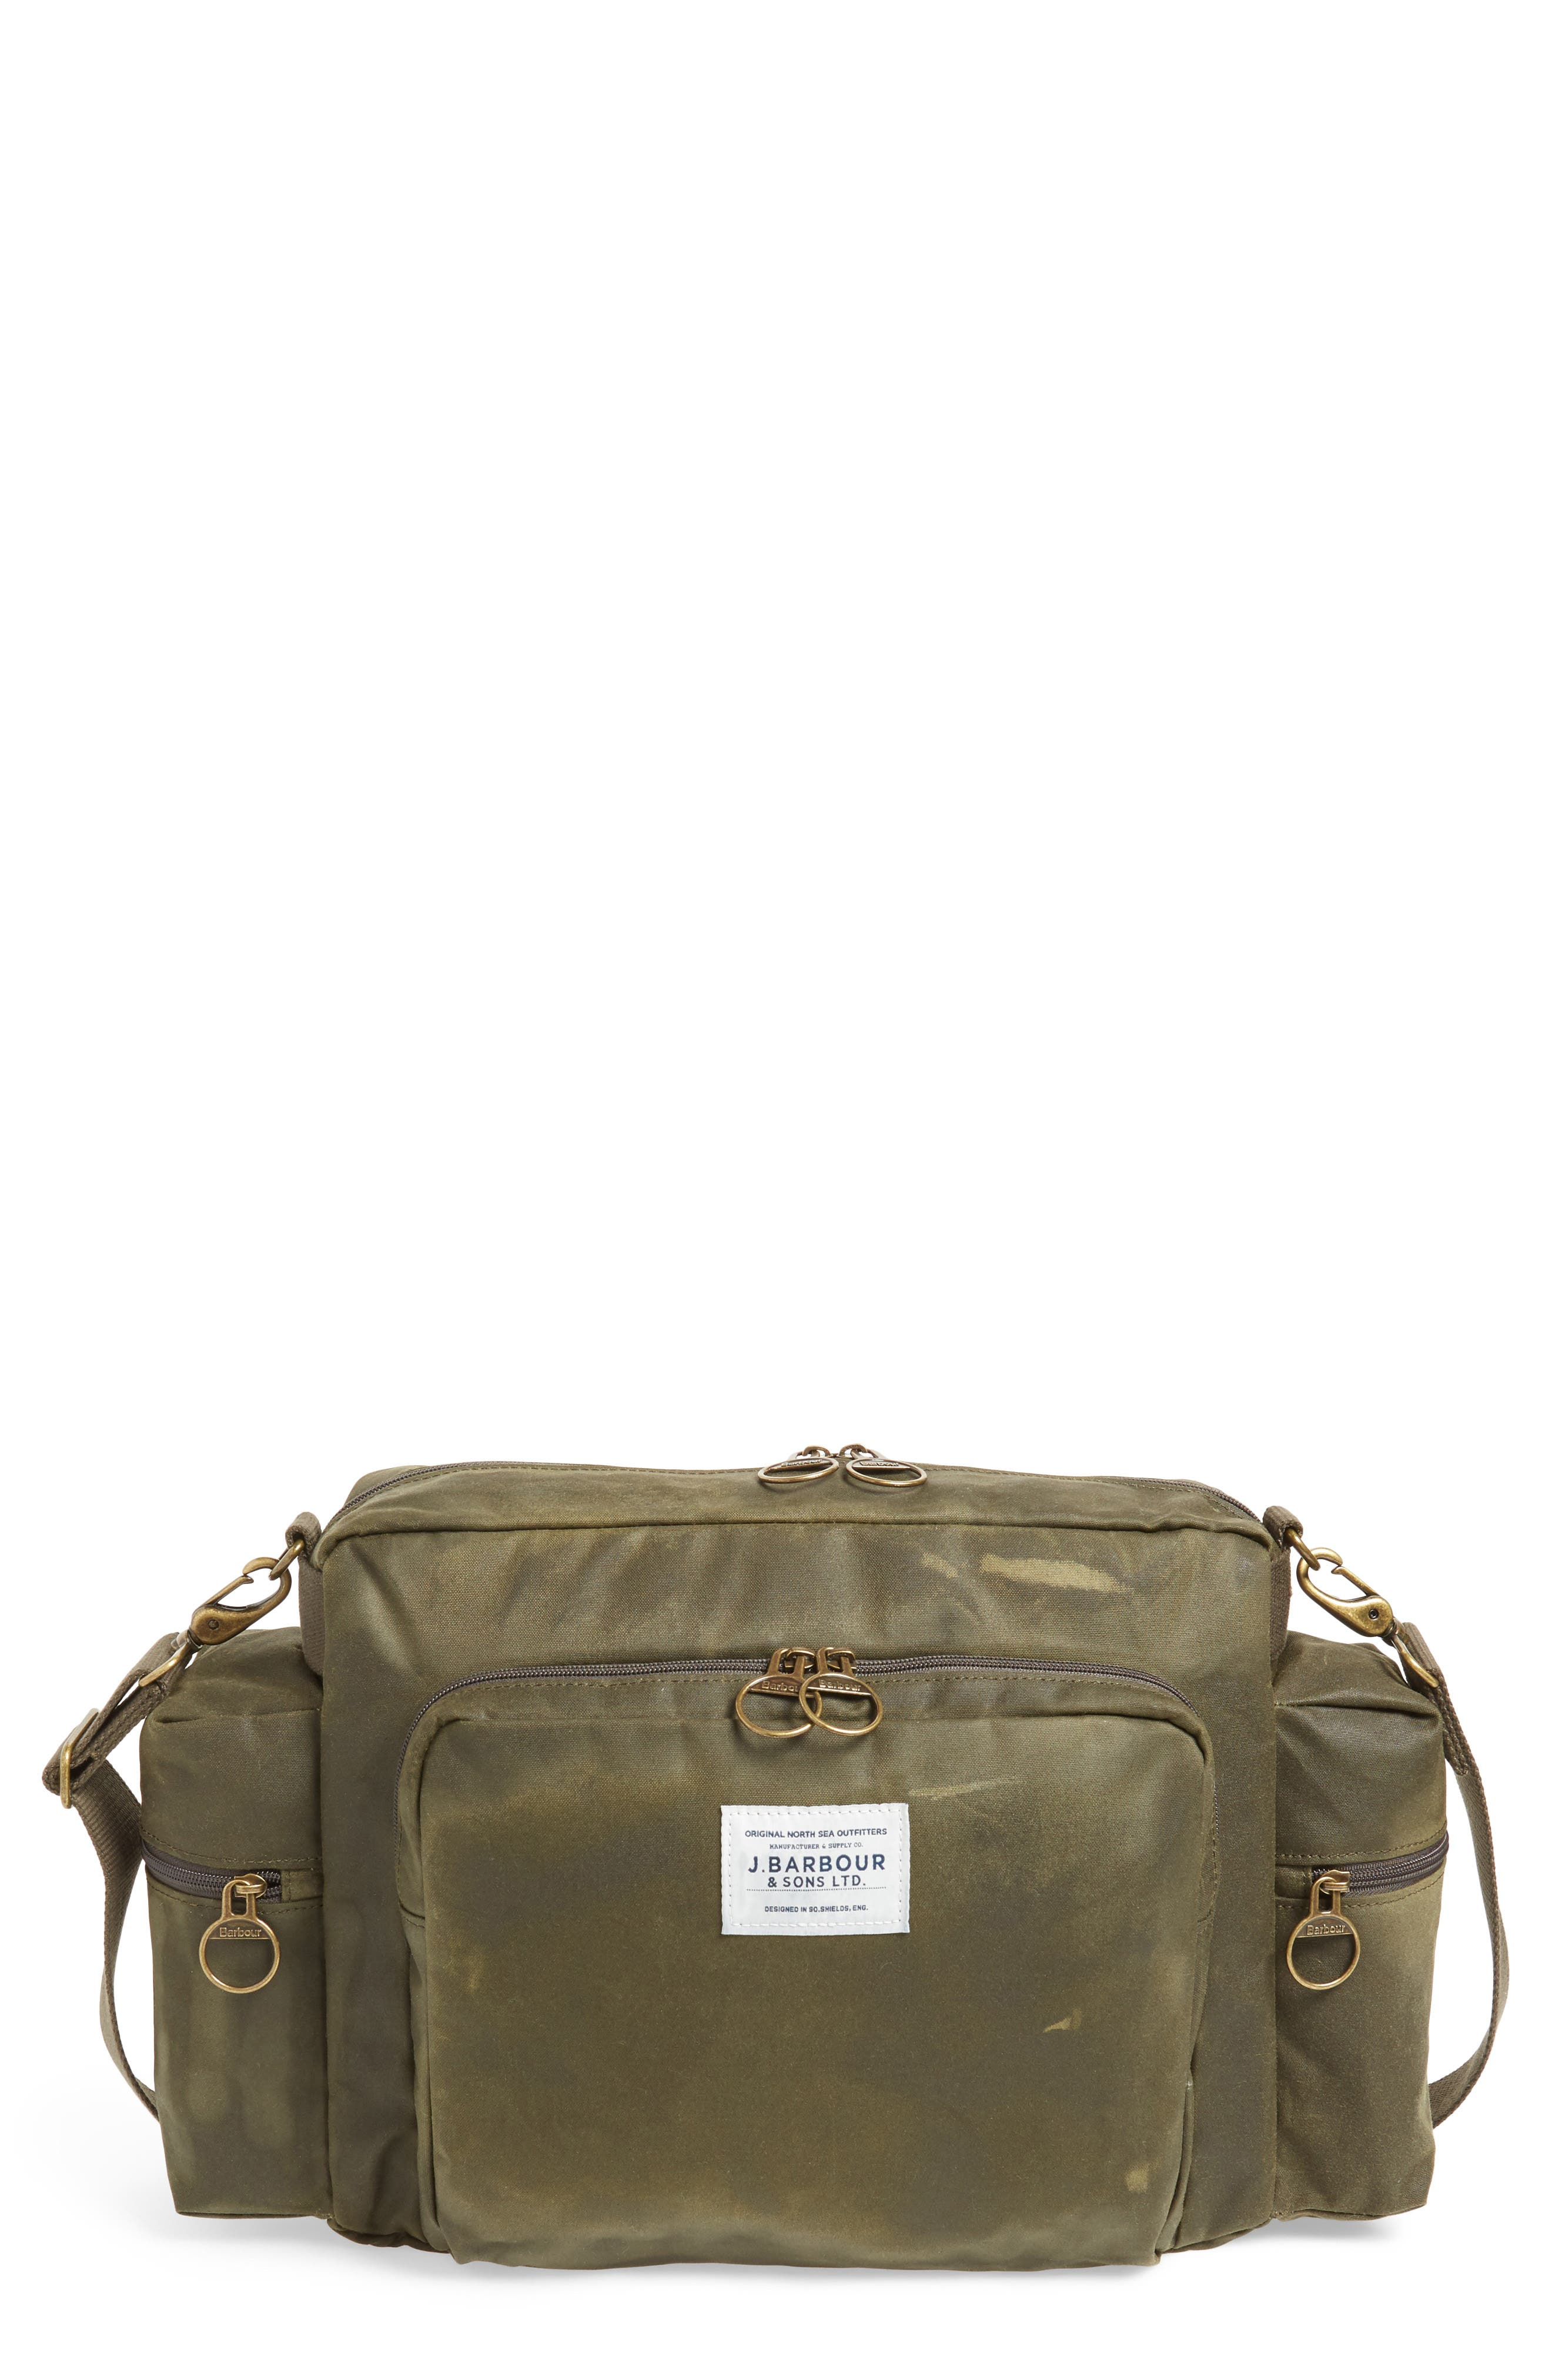 Archive Business Bag,                             Main thumbnail 1, color,                             ARCHIVE OLIVE